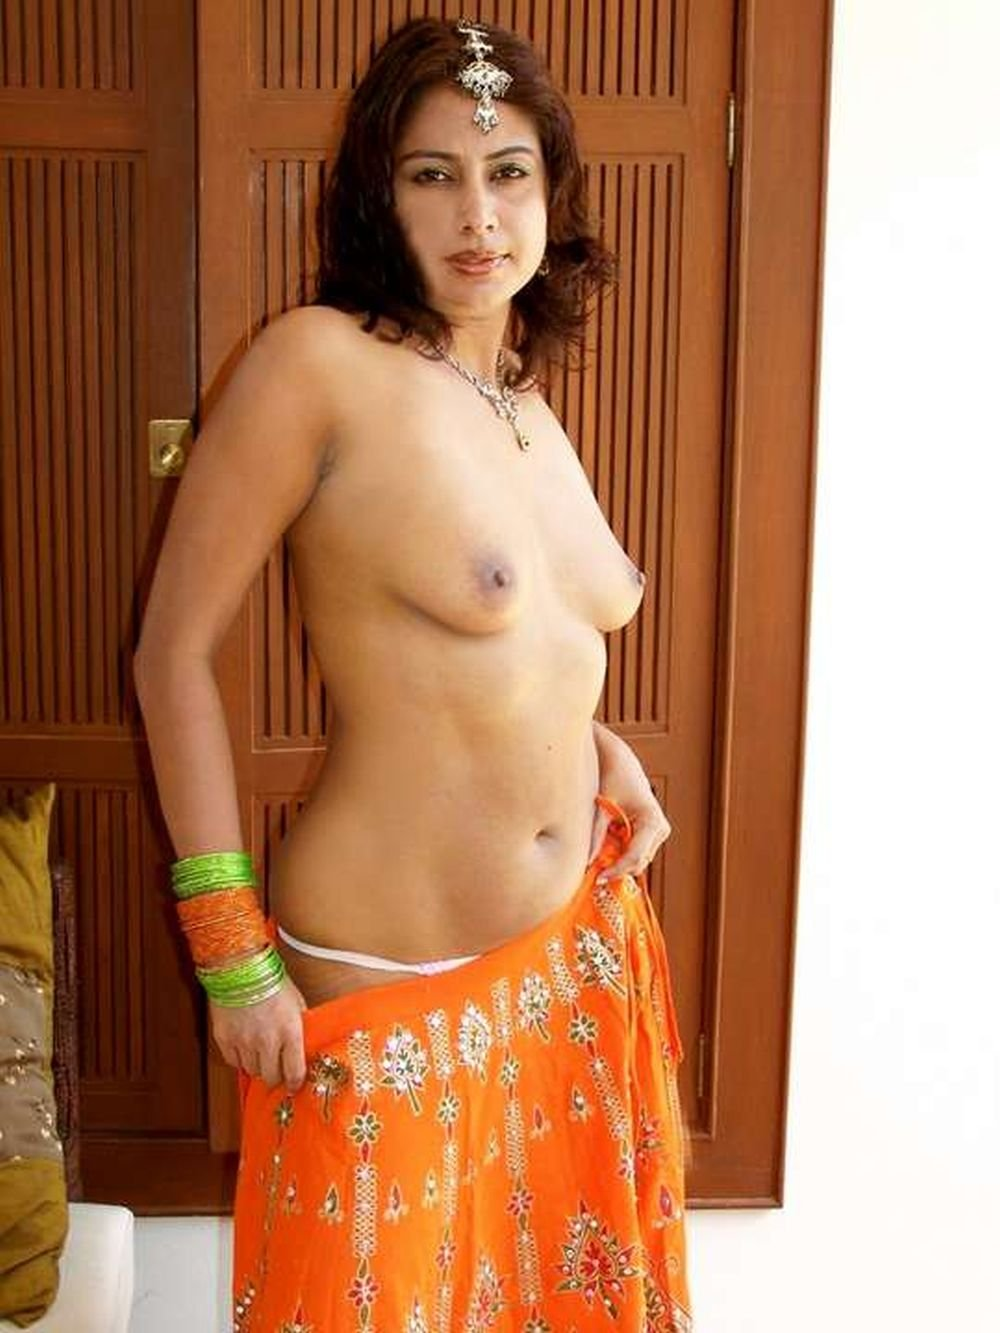 Sexy indian girls in saree, bangla naked virgin girls handling photo